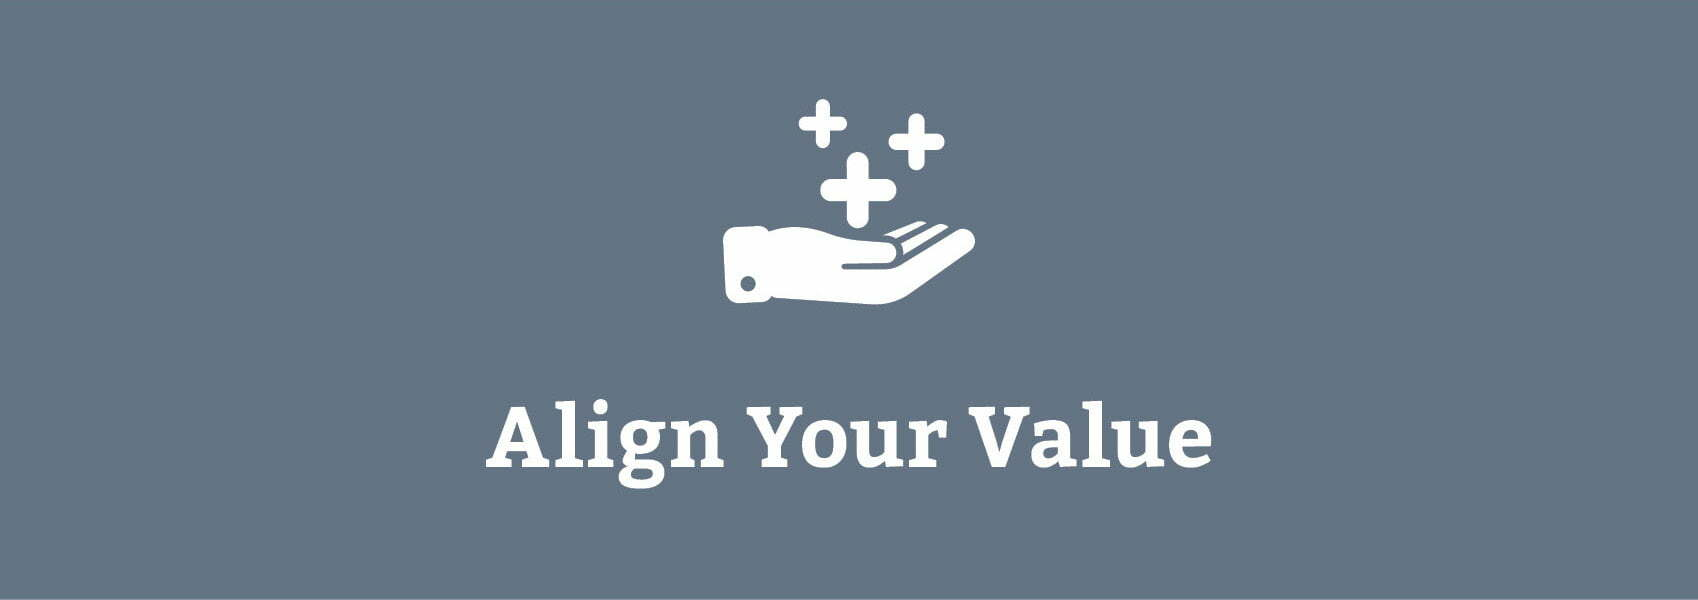 Align your value